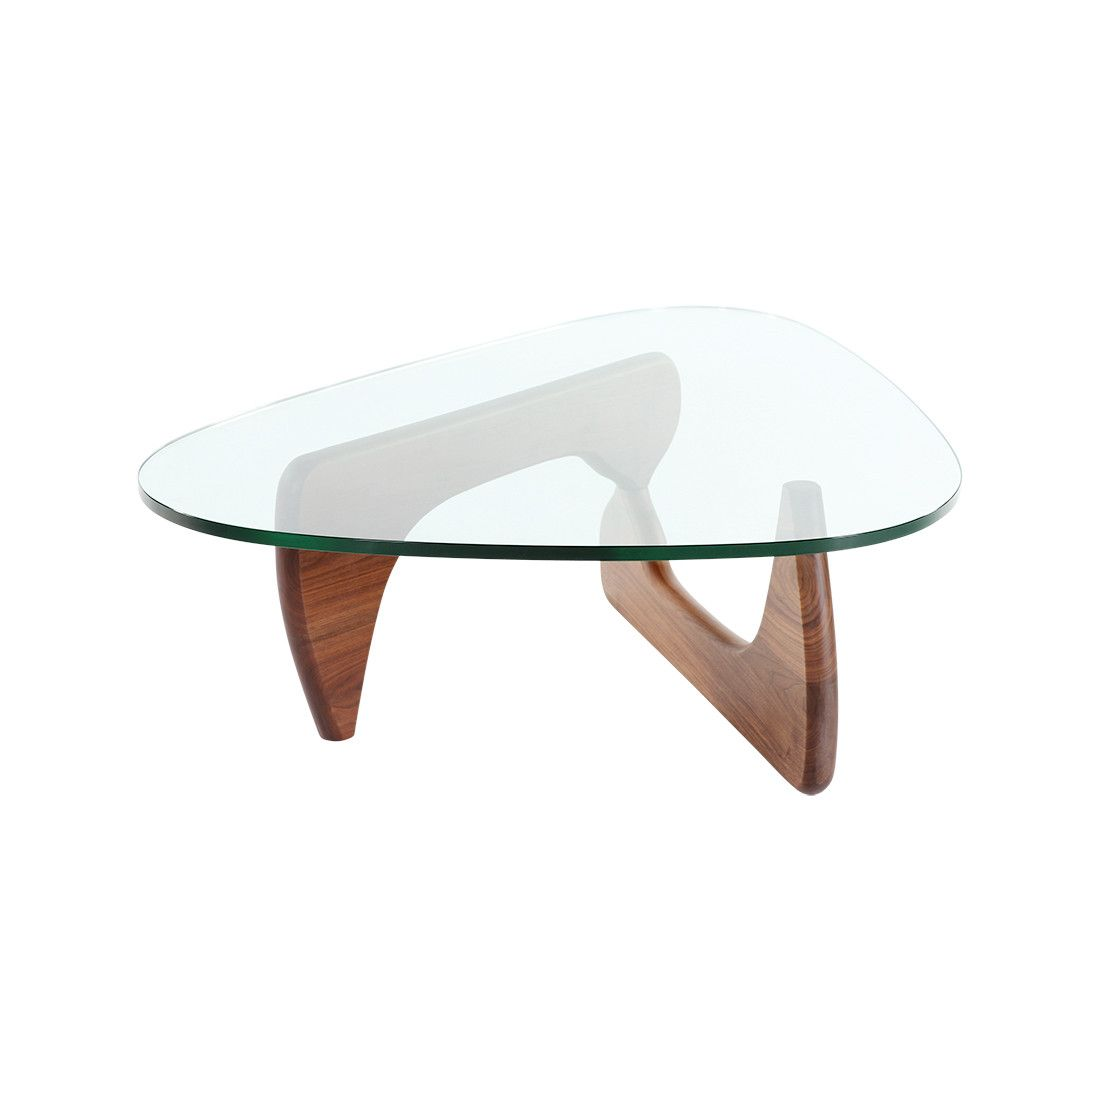 Delicieux Mid Century Modern Reproduction Noguchi Coffee Table   American Walnut  Inspired By Isamu Noguchi